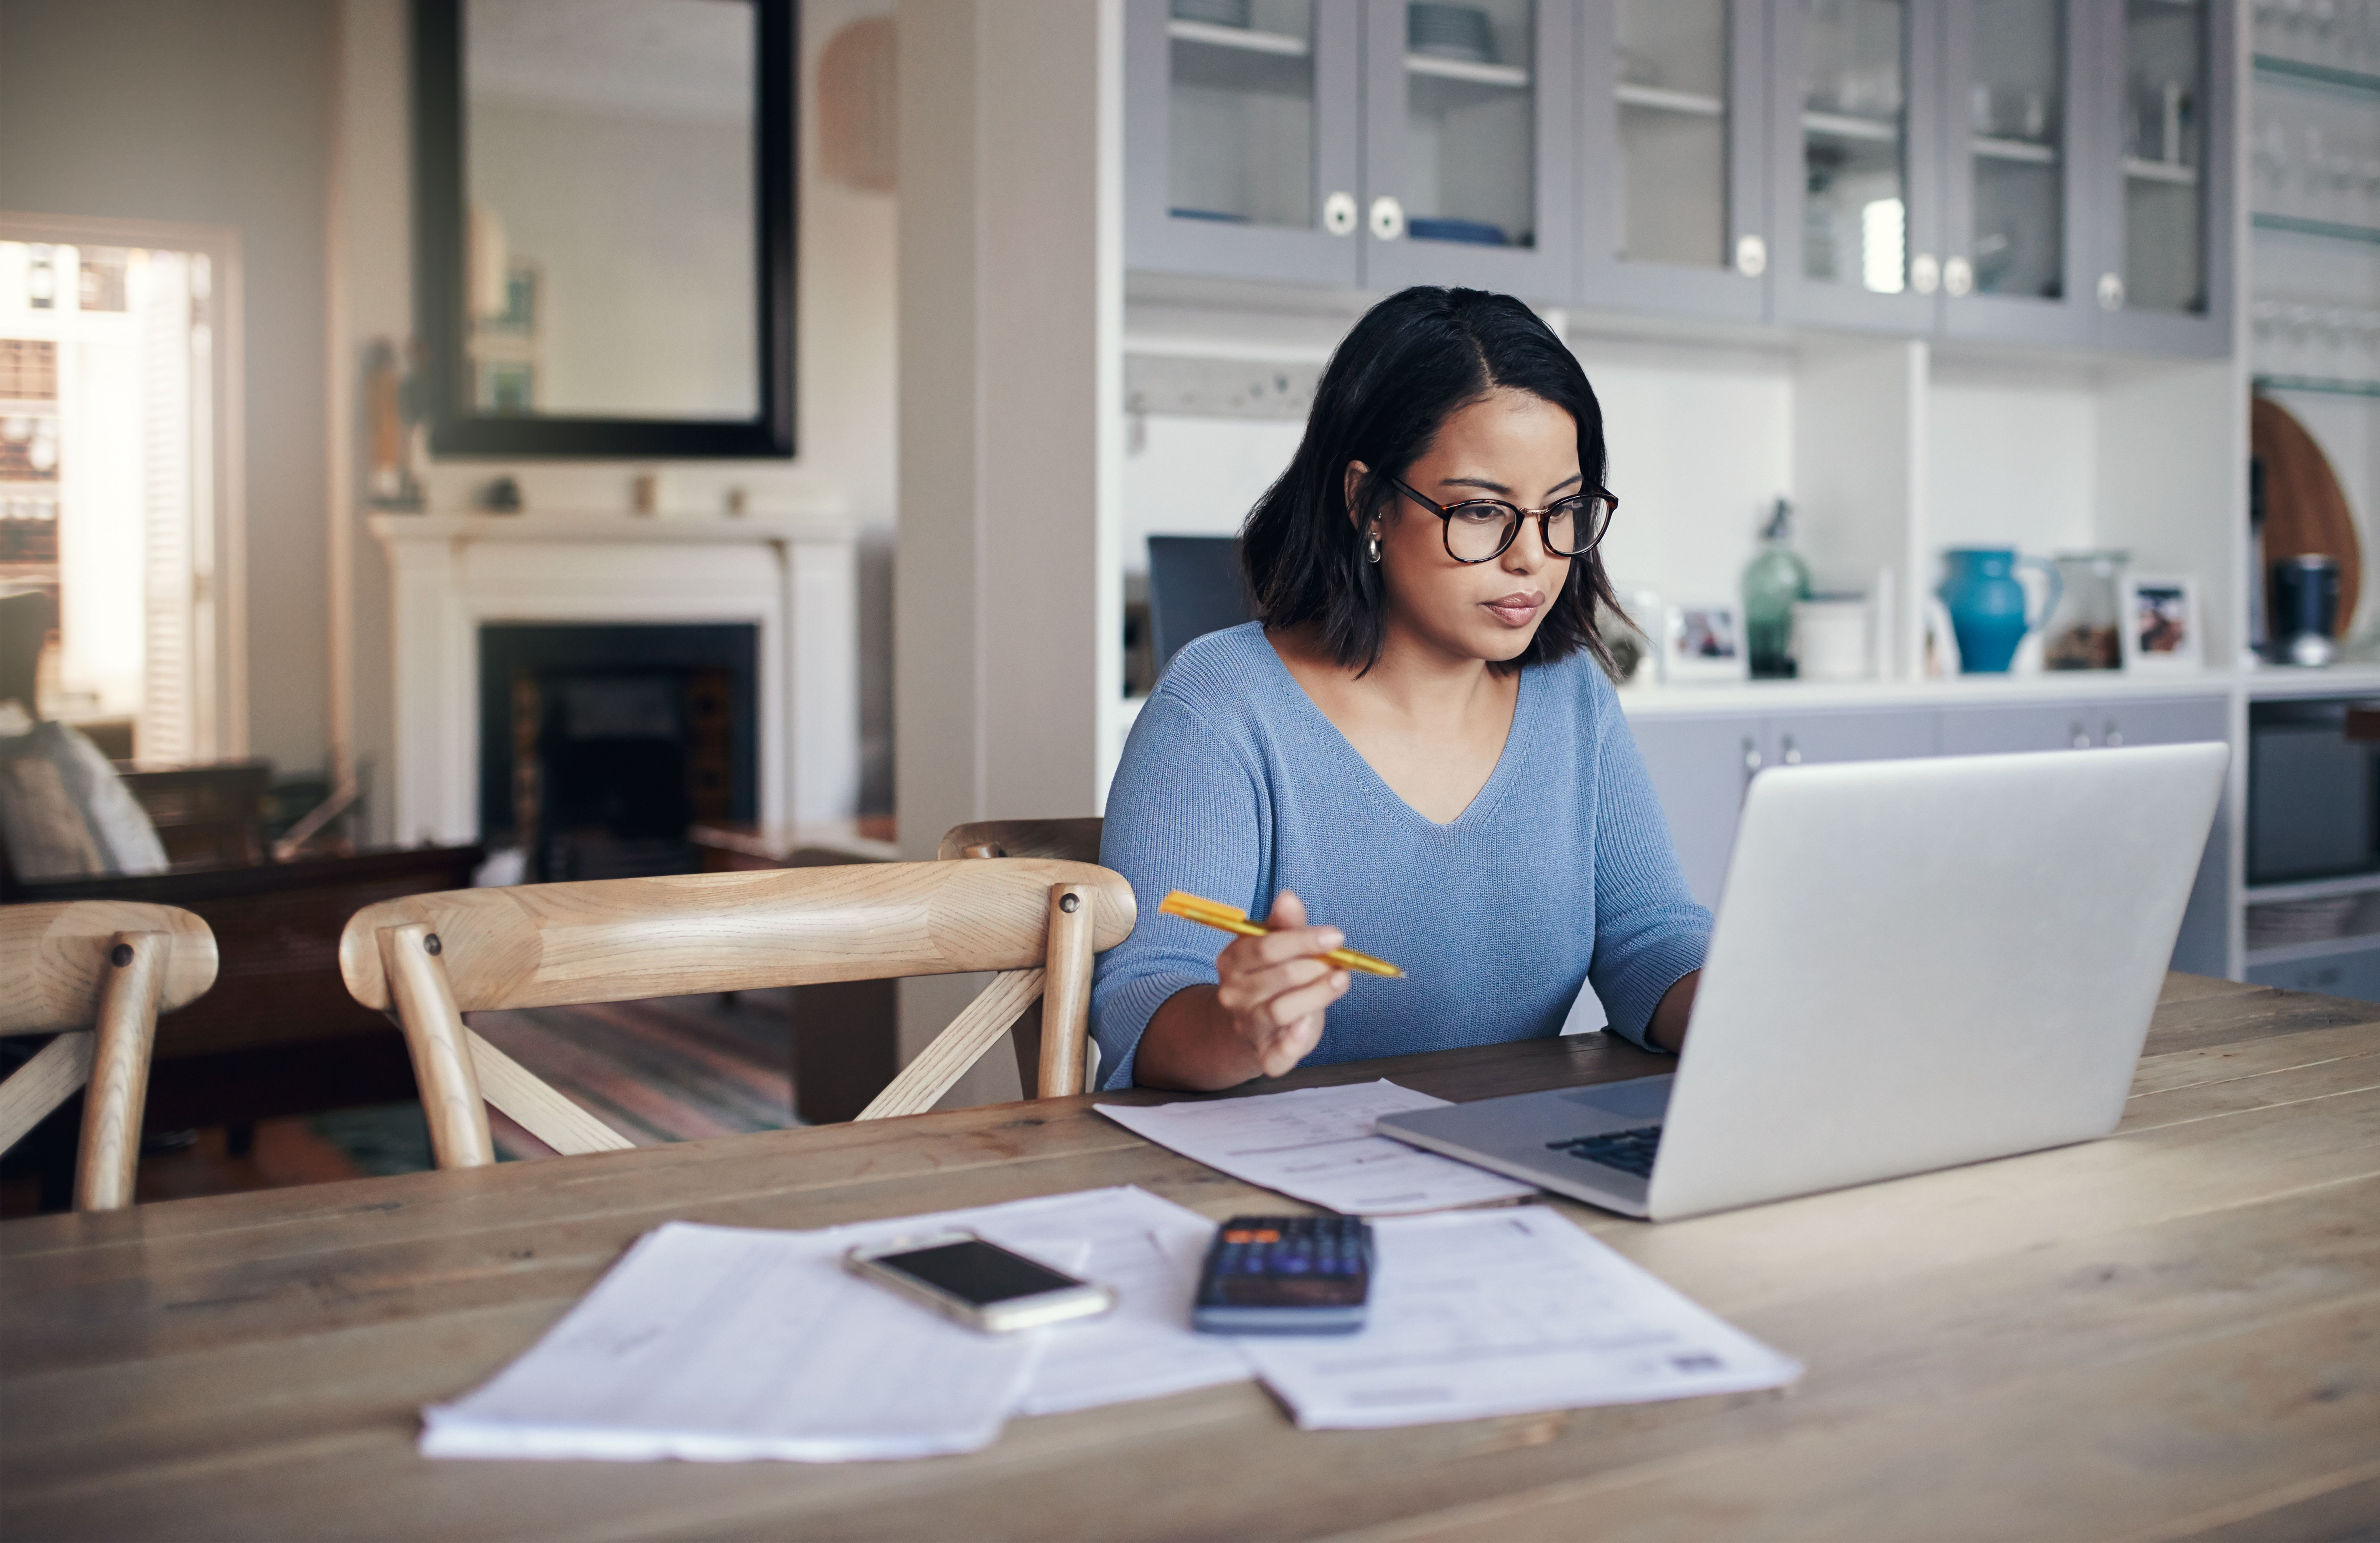 Woman using a laptop while working from home